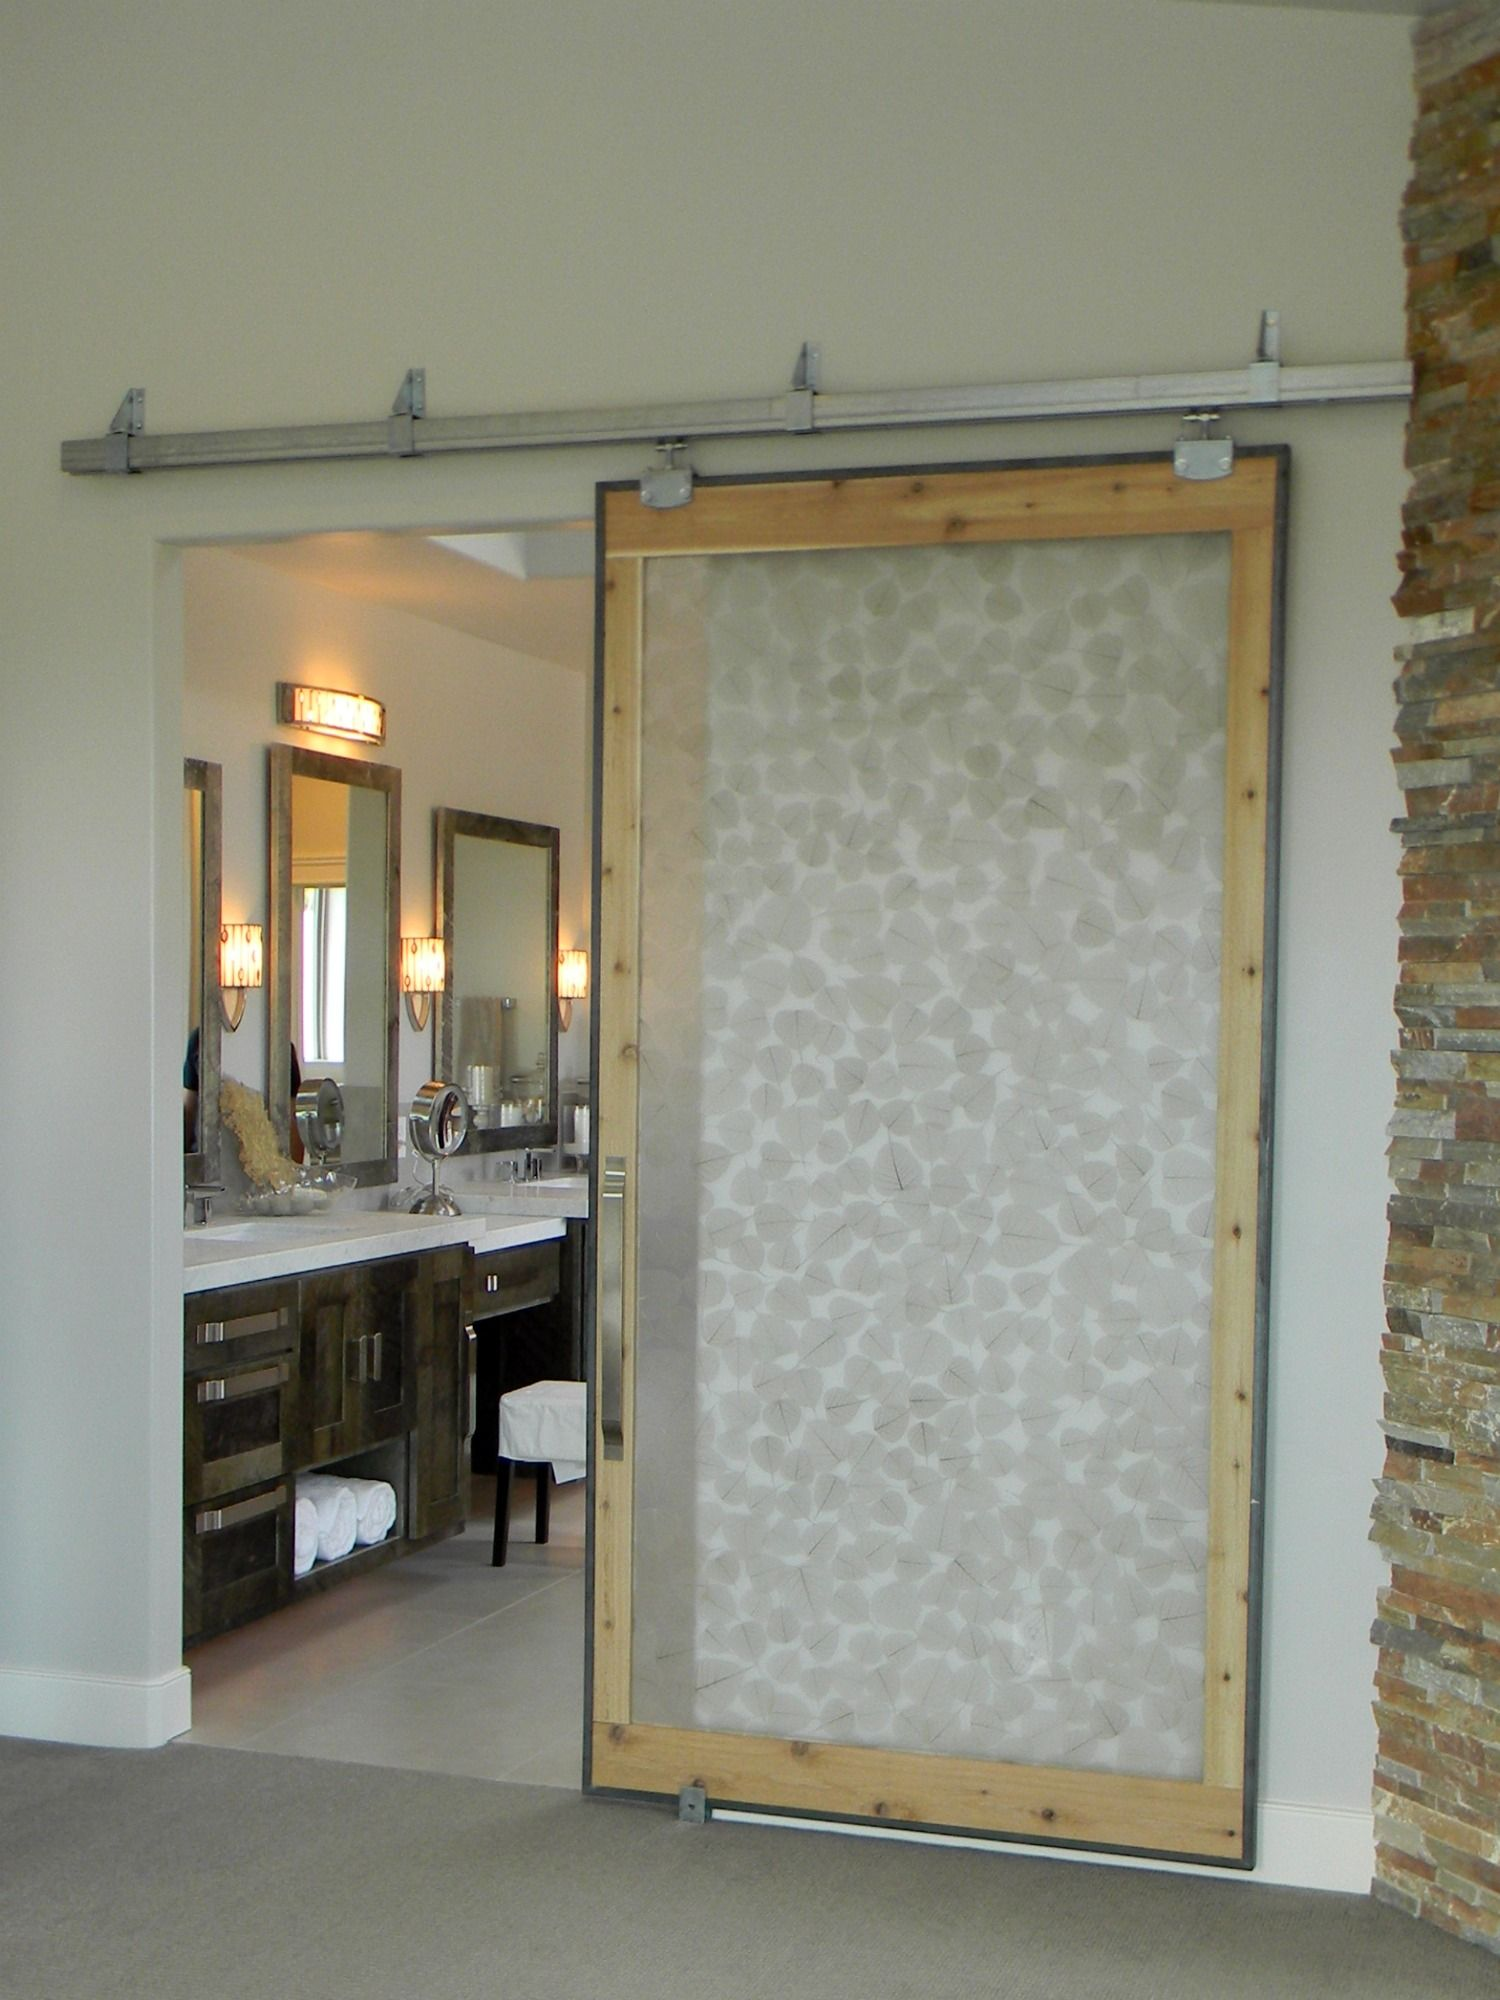 Organize And Decorate Everything Organize Your Life And Decorate Your World Diy Sliding Barn Door Home Parade Of Homes